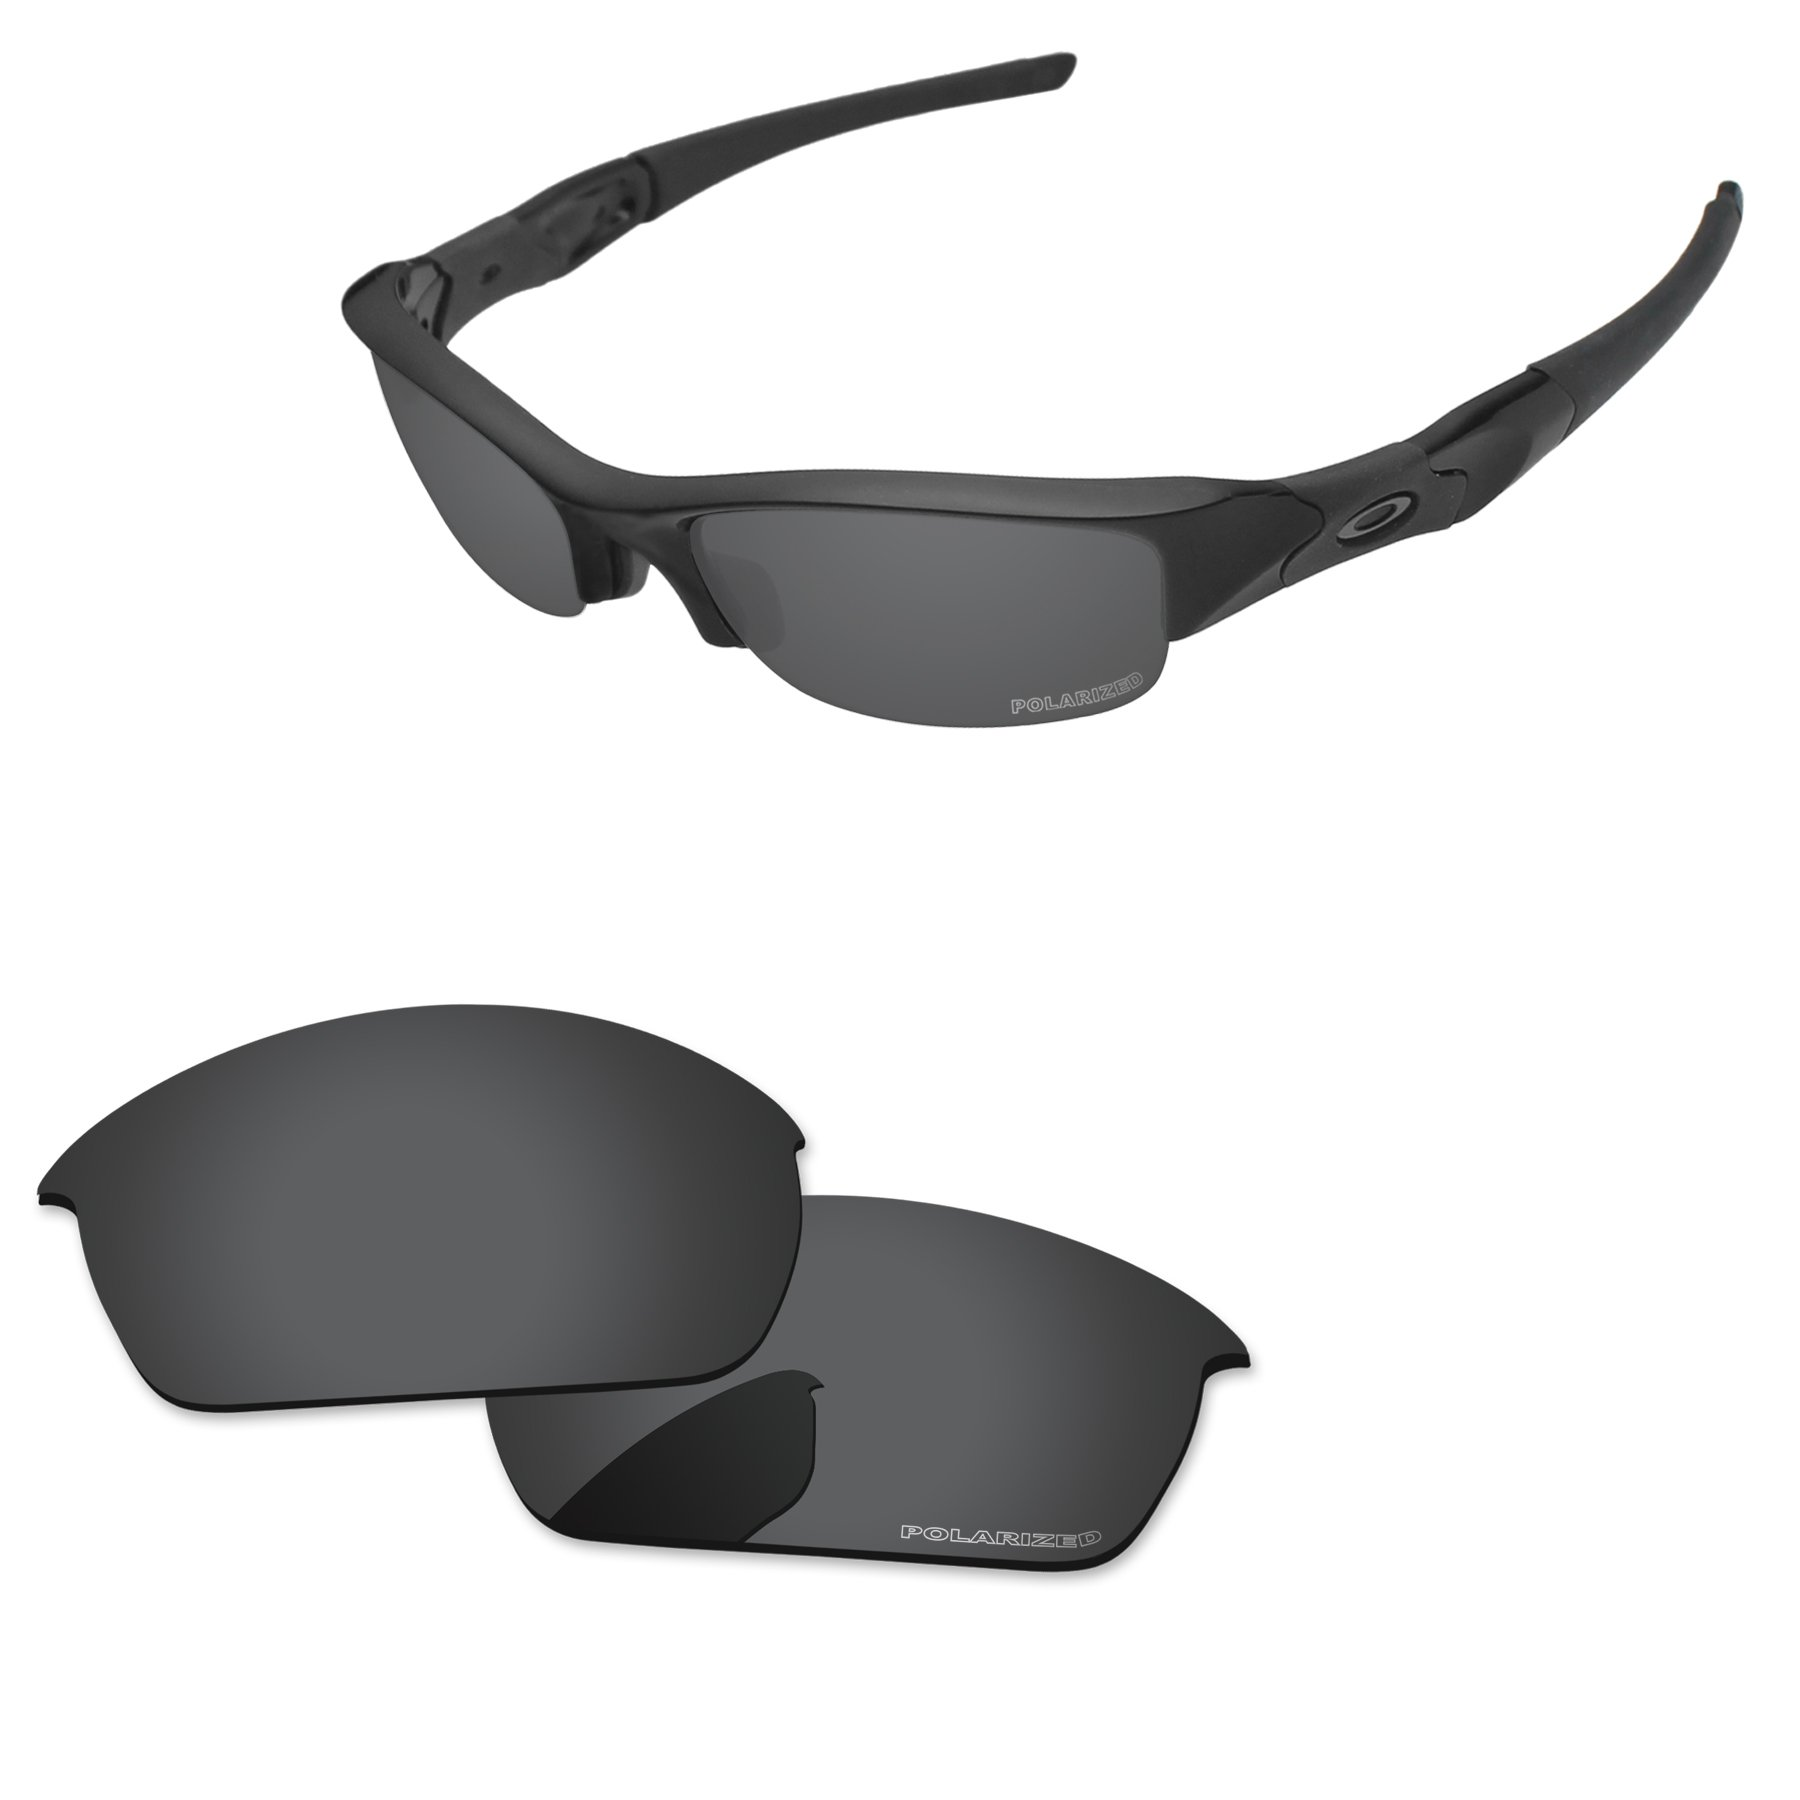 PapaViva Replacement Lenses for Oakley Flak Jacket Black Grey - Polarized by PapaViva